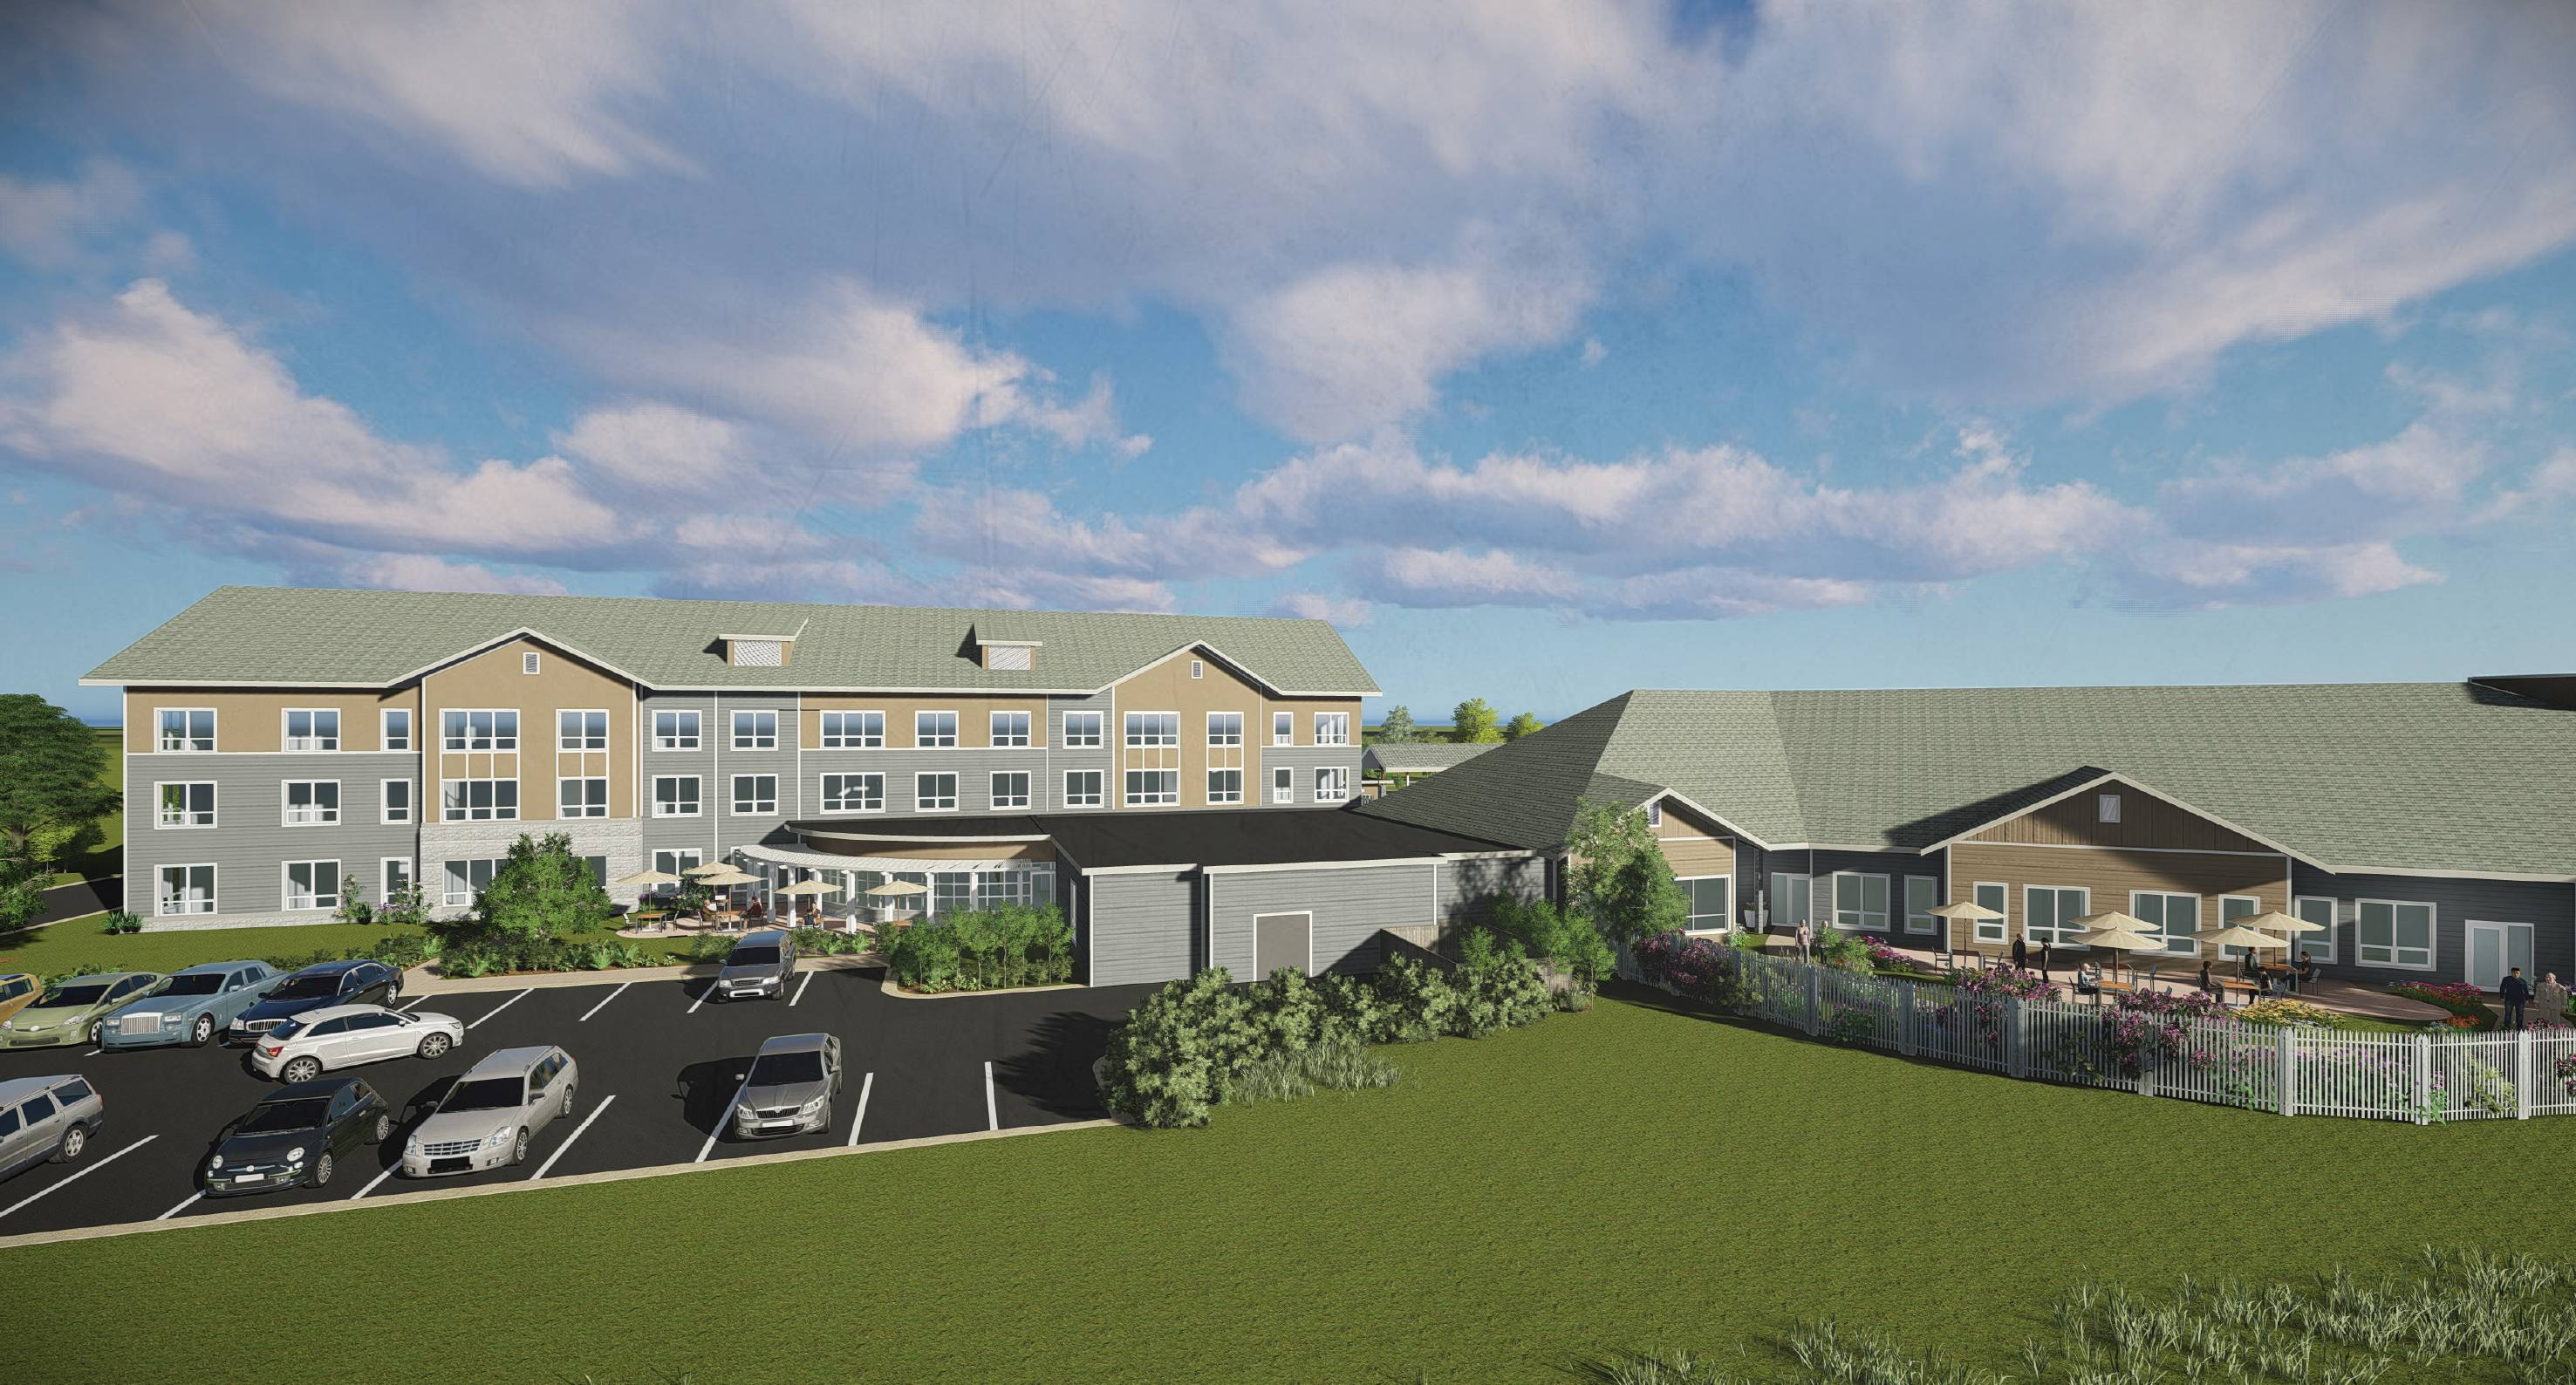 Assisted living facility proposed for Mundelein